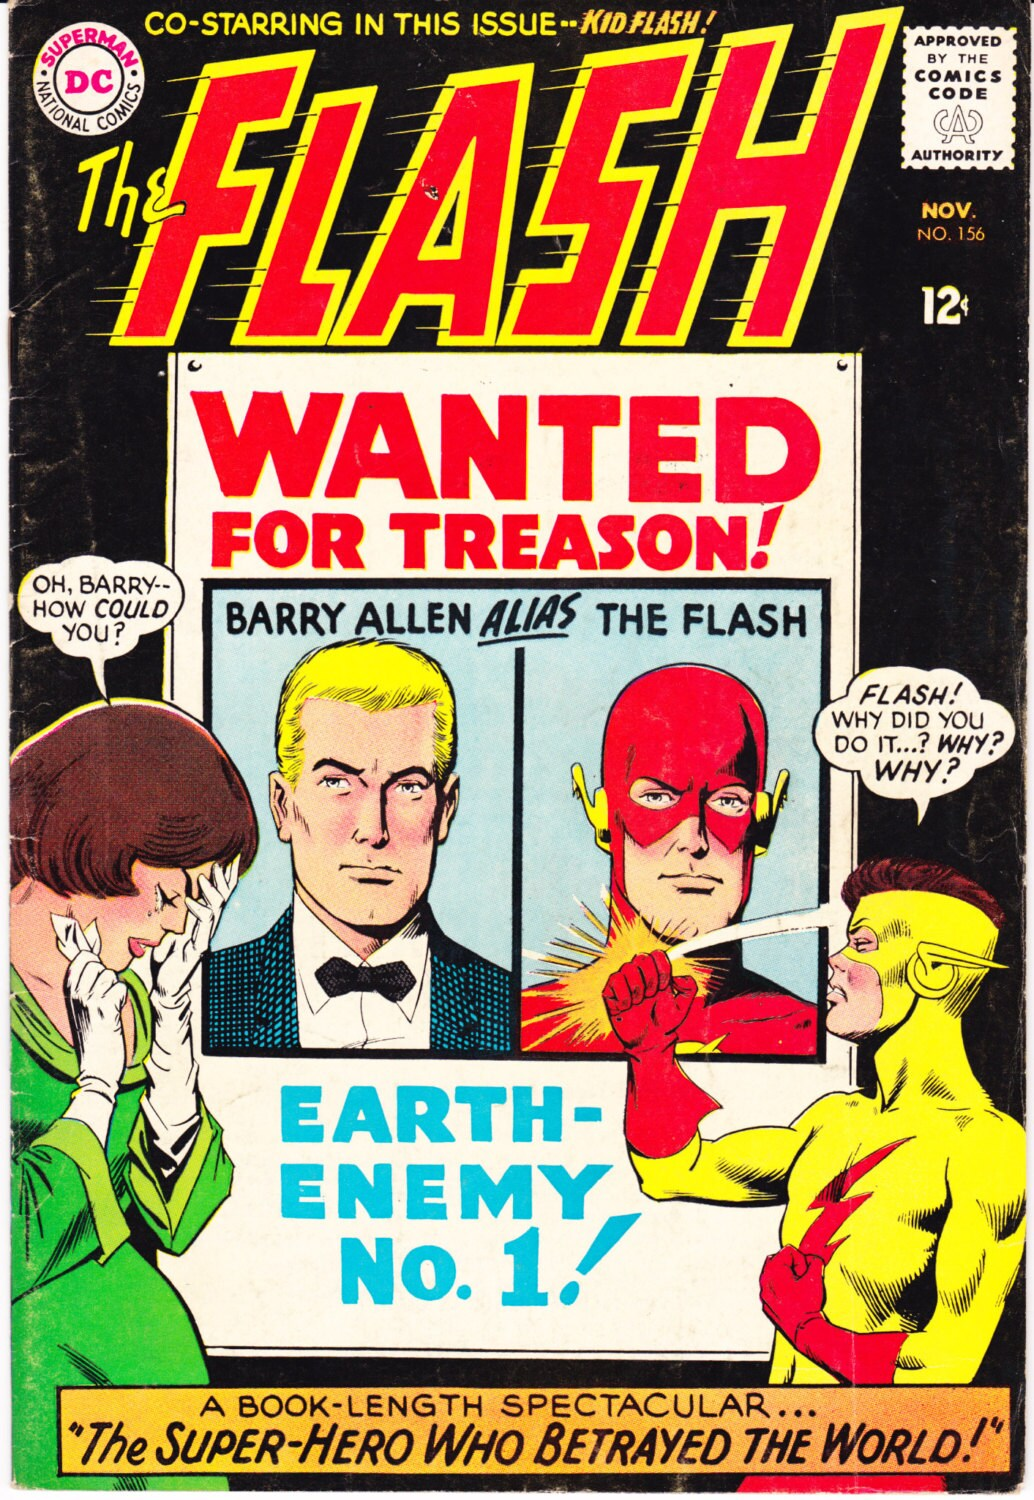 The Flash Superhero 156 Barry Allen comic book party gift